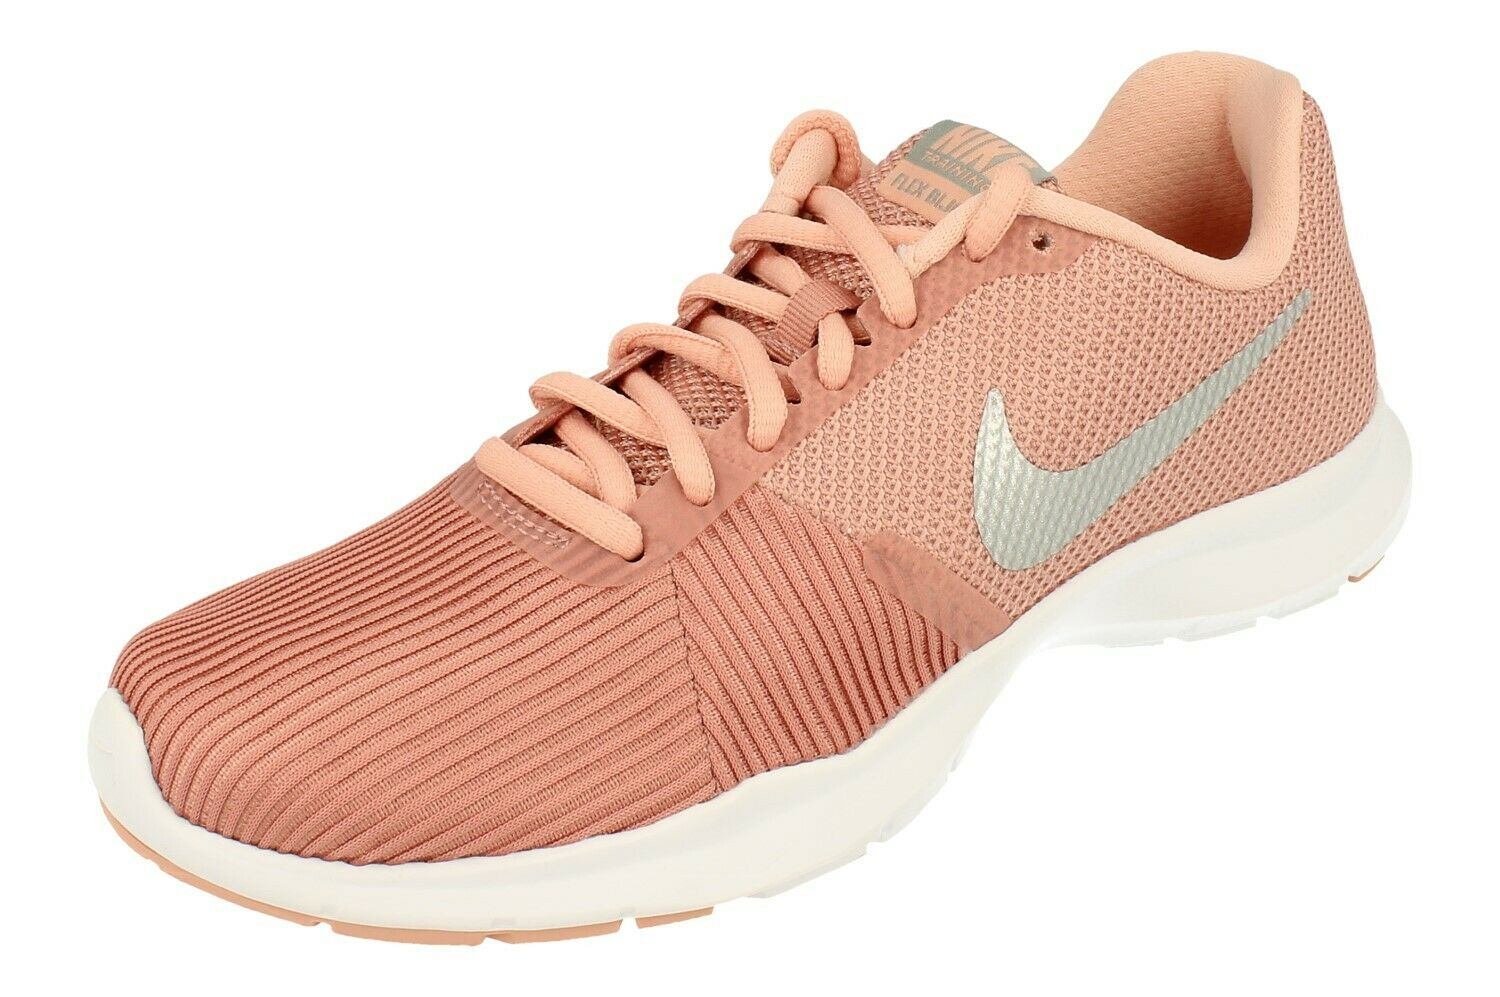 Nike Womens Flex Bijoux Running Trainers 881863 Sneakers shoes 610